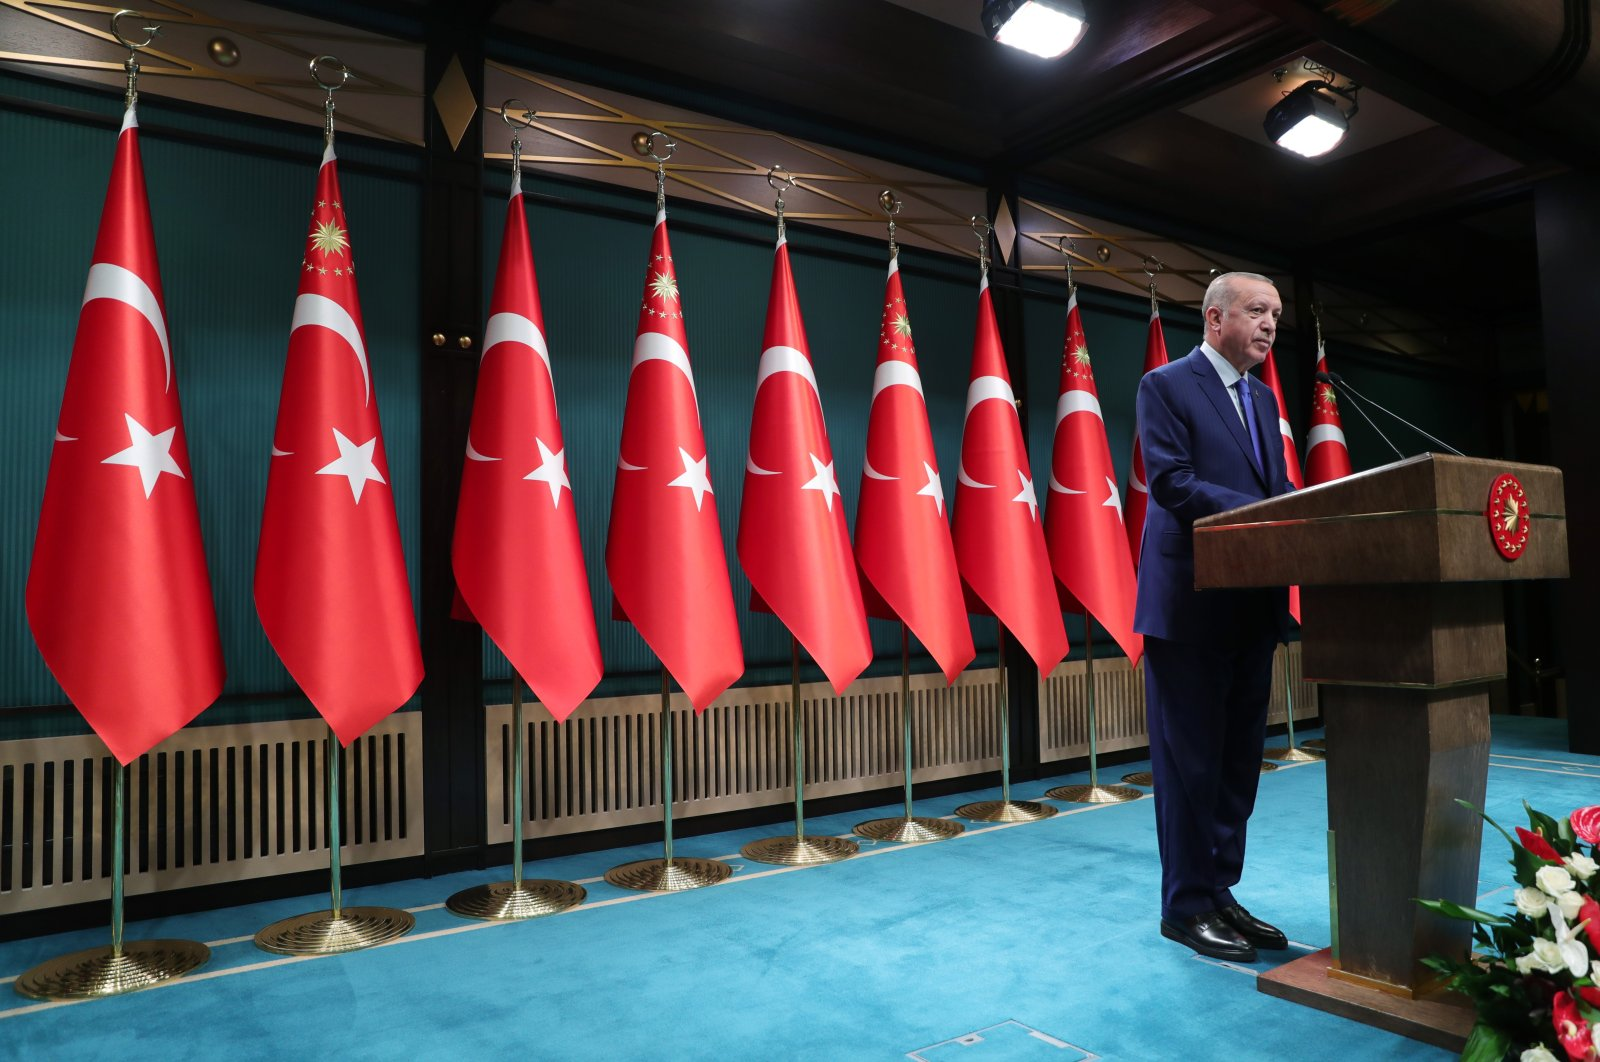 President Recep Tayyip Erdoğan speaks during a press conference at the Presidential Complex in Ankara, Oct. 20, 2020. (AA Photo)